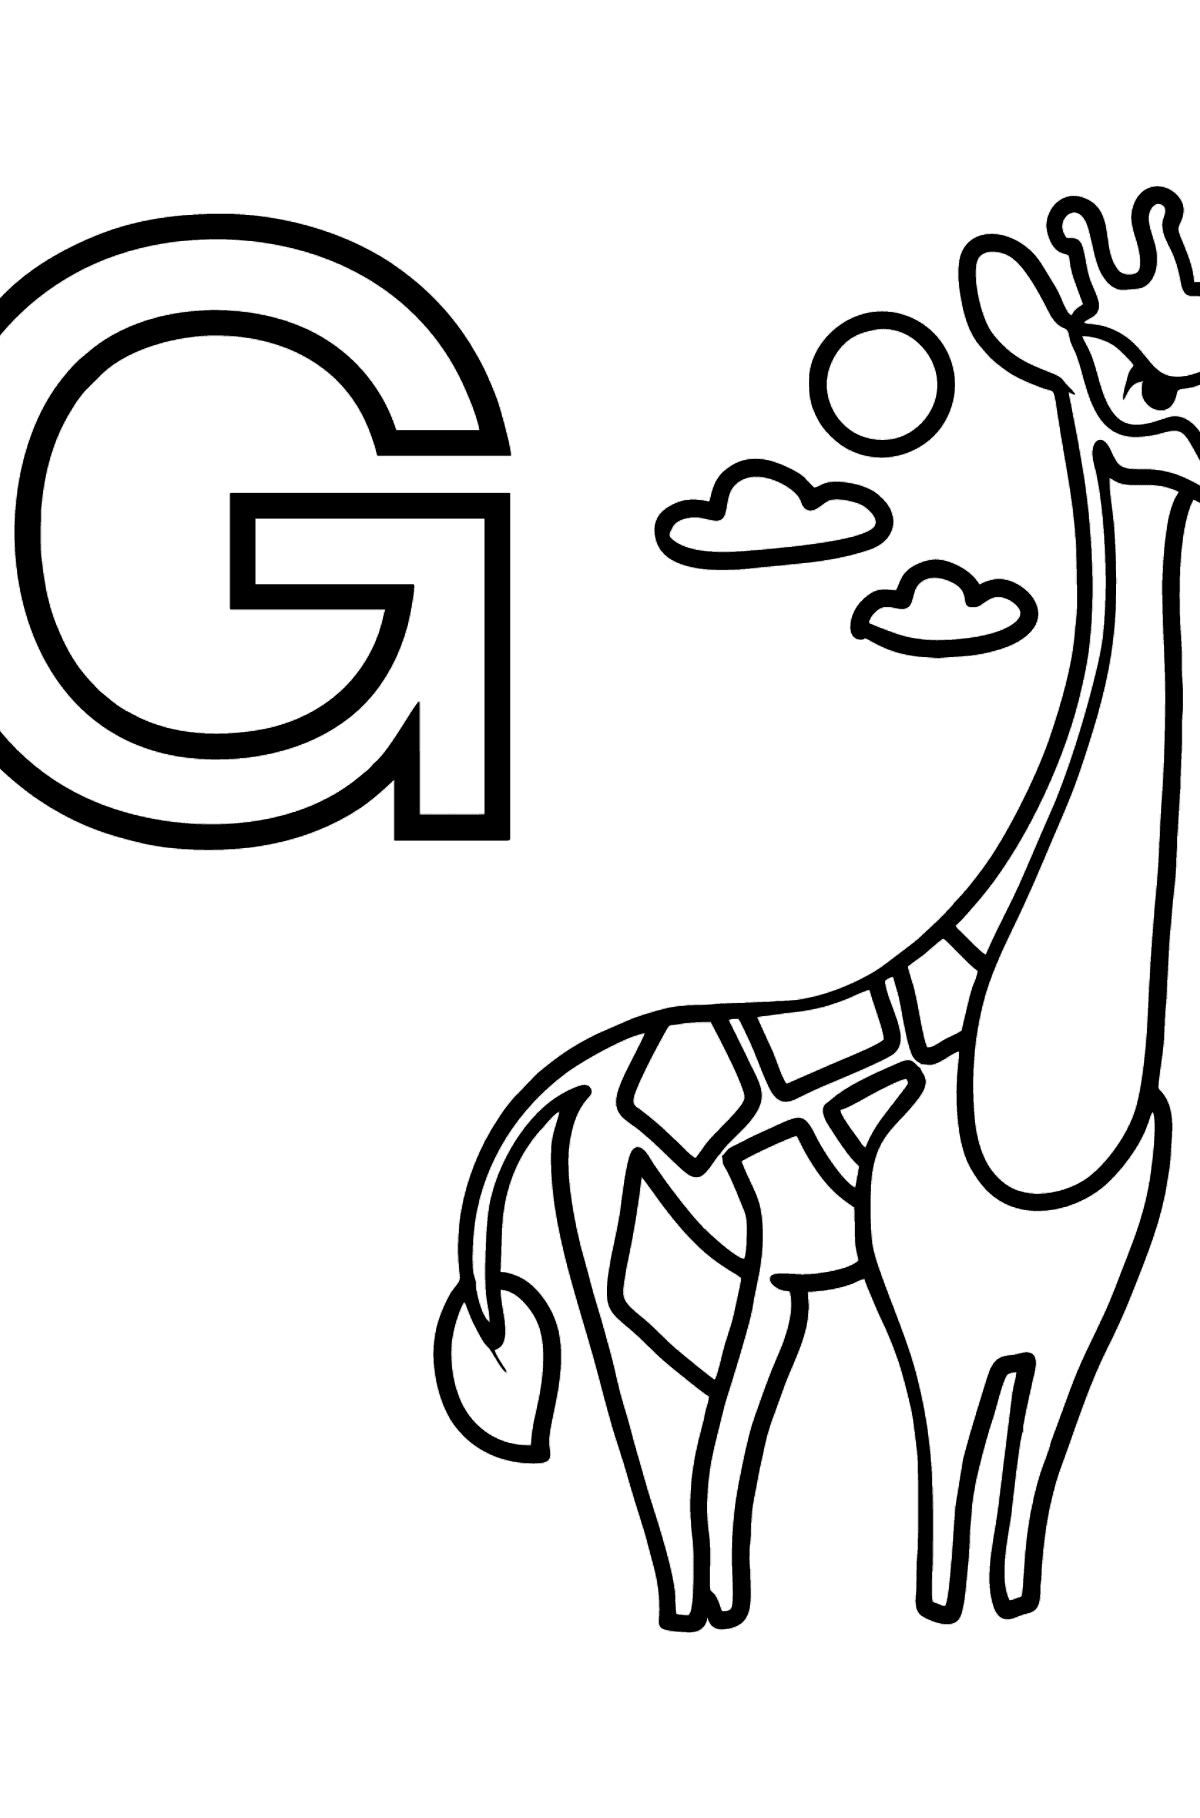 English Letter G coloring pages - GIRAFFE - Coloring Pages for Kids